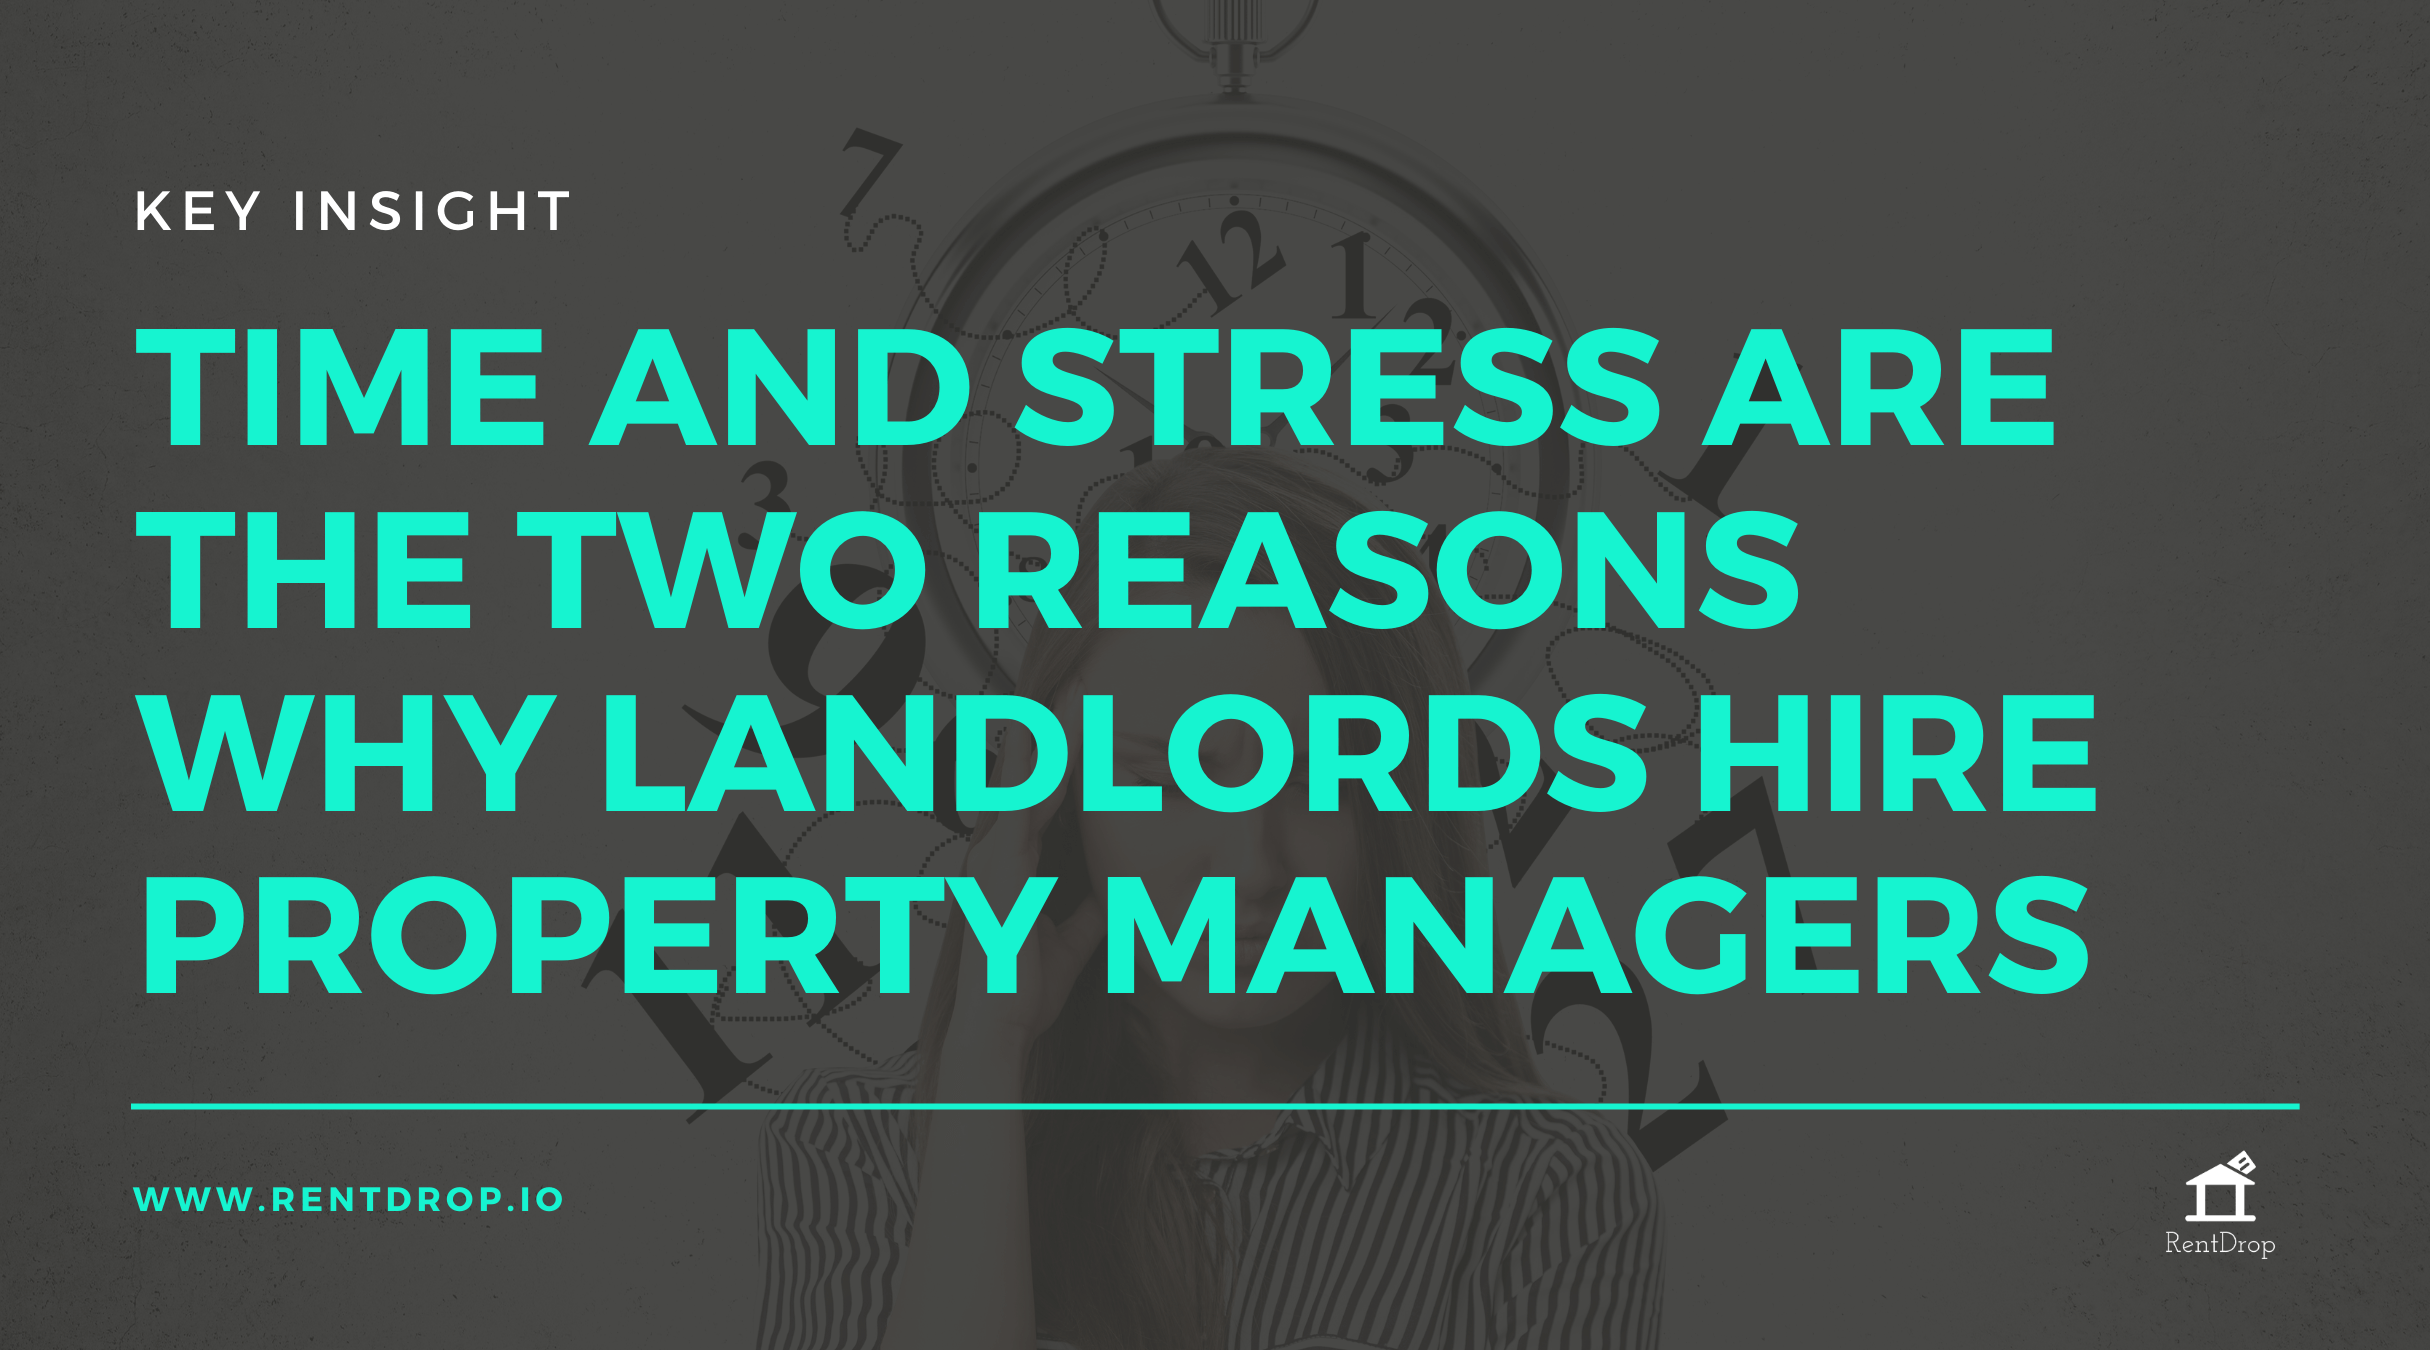 hire property managers